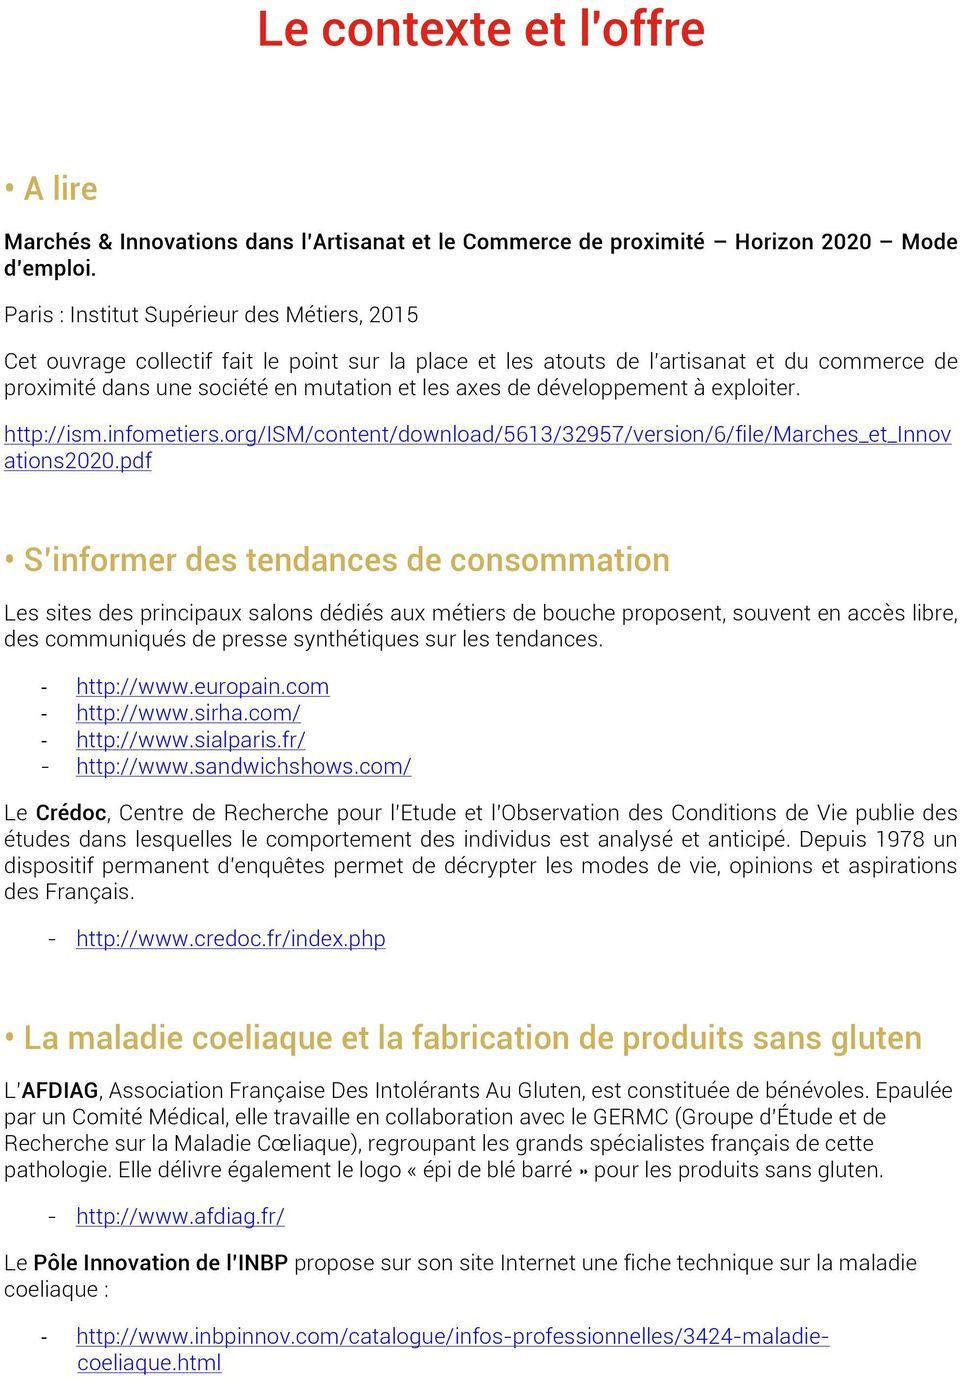 développement à exploiter. http://ism.infometiers.org/ism/content/download/5613/32957/version/6/file/marches_et_innov ations2020.